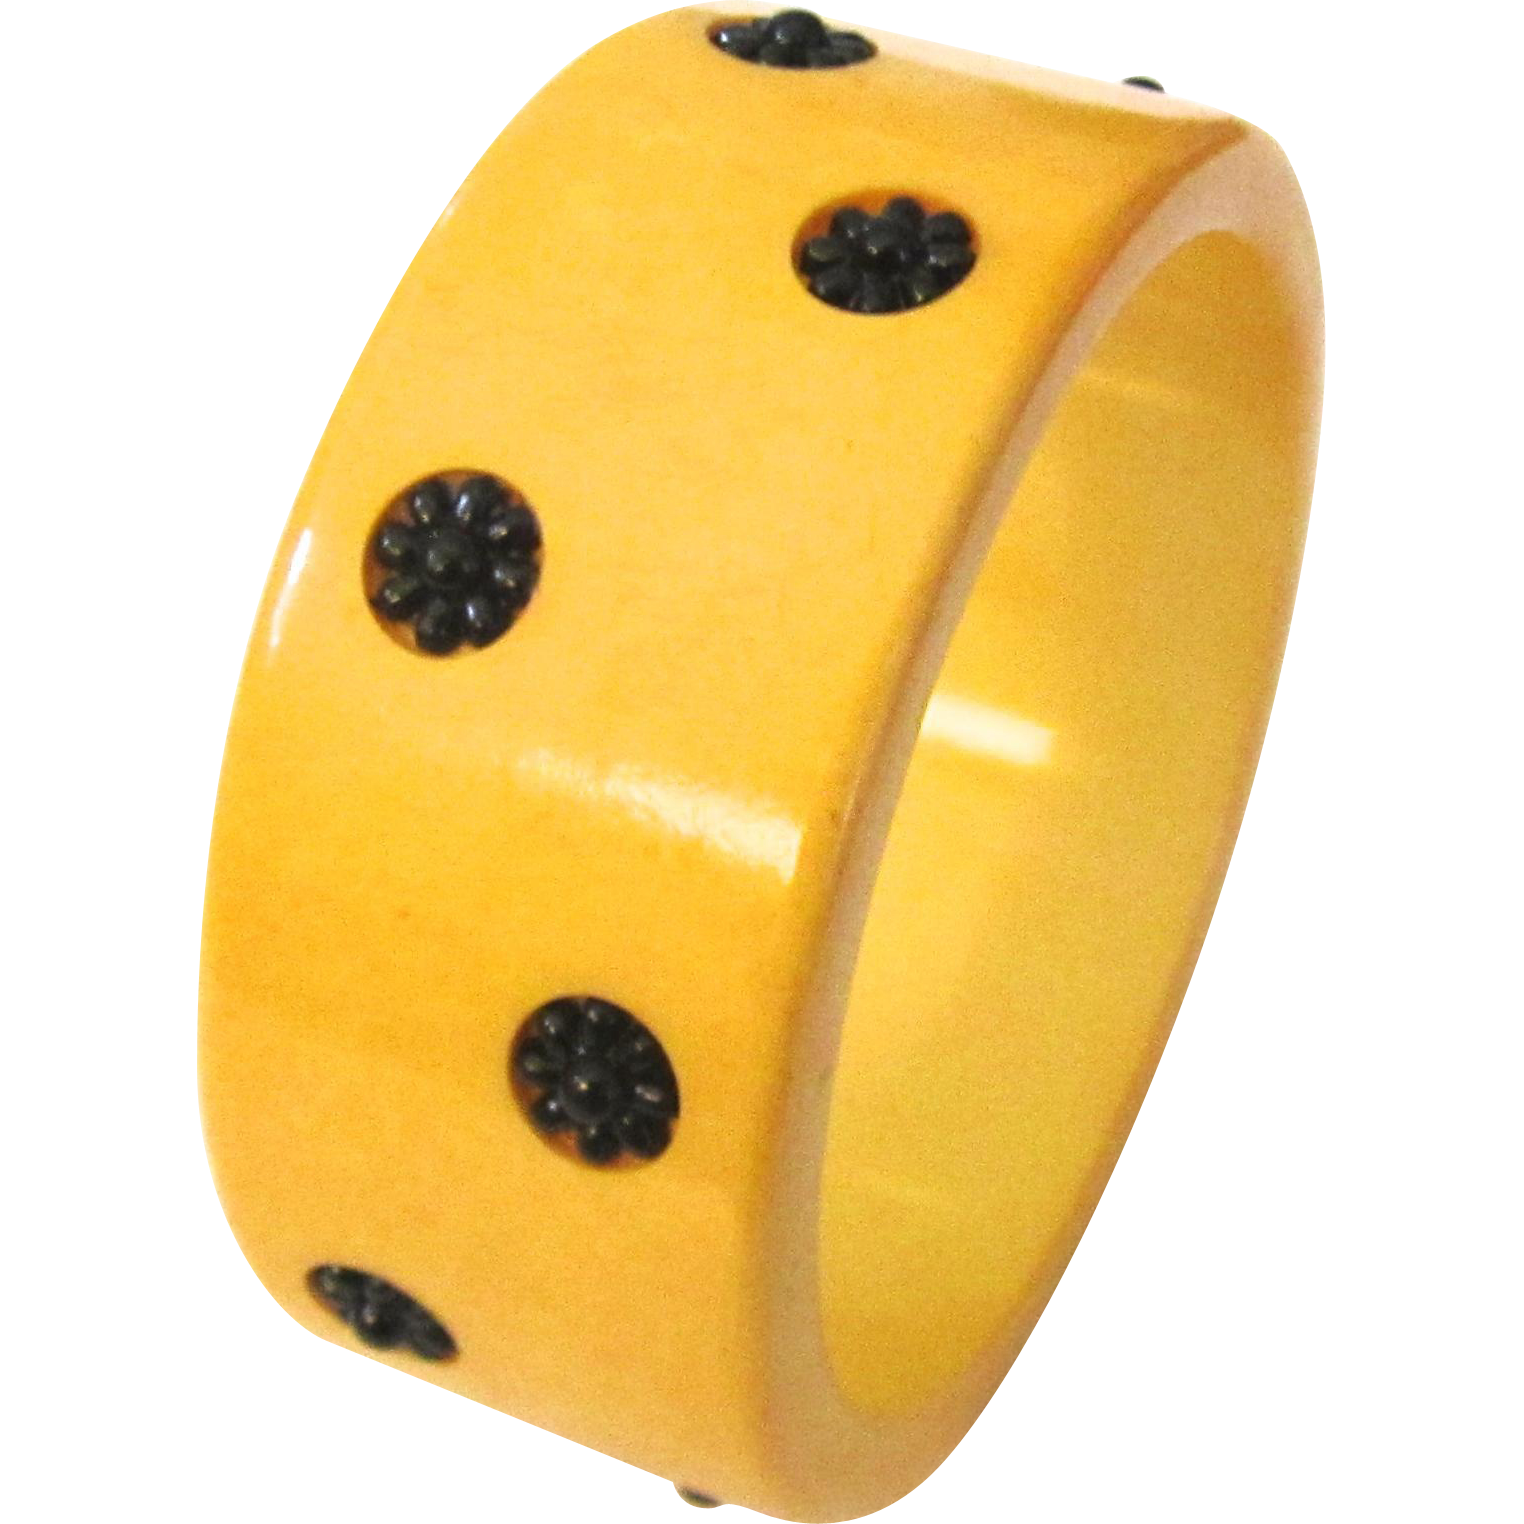 Bakelite Bangle Bracelet with Flowers Laugh-In Style